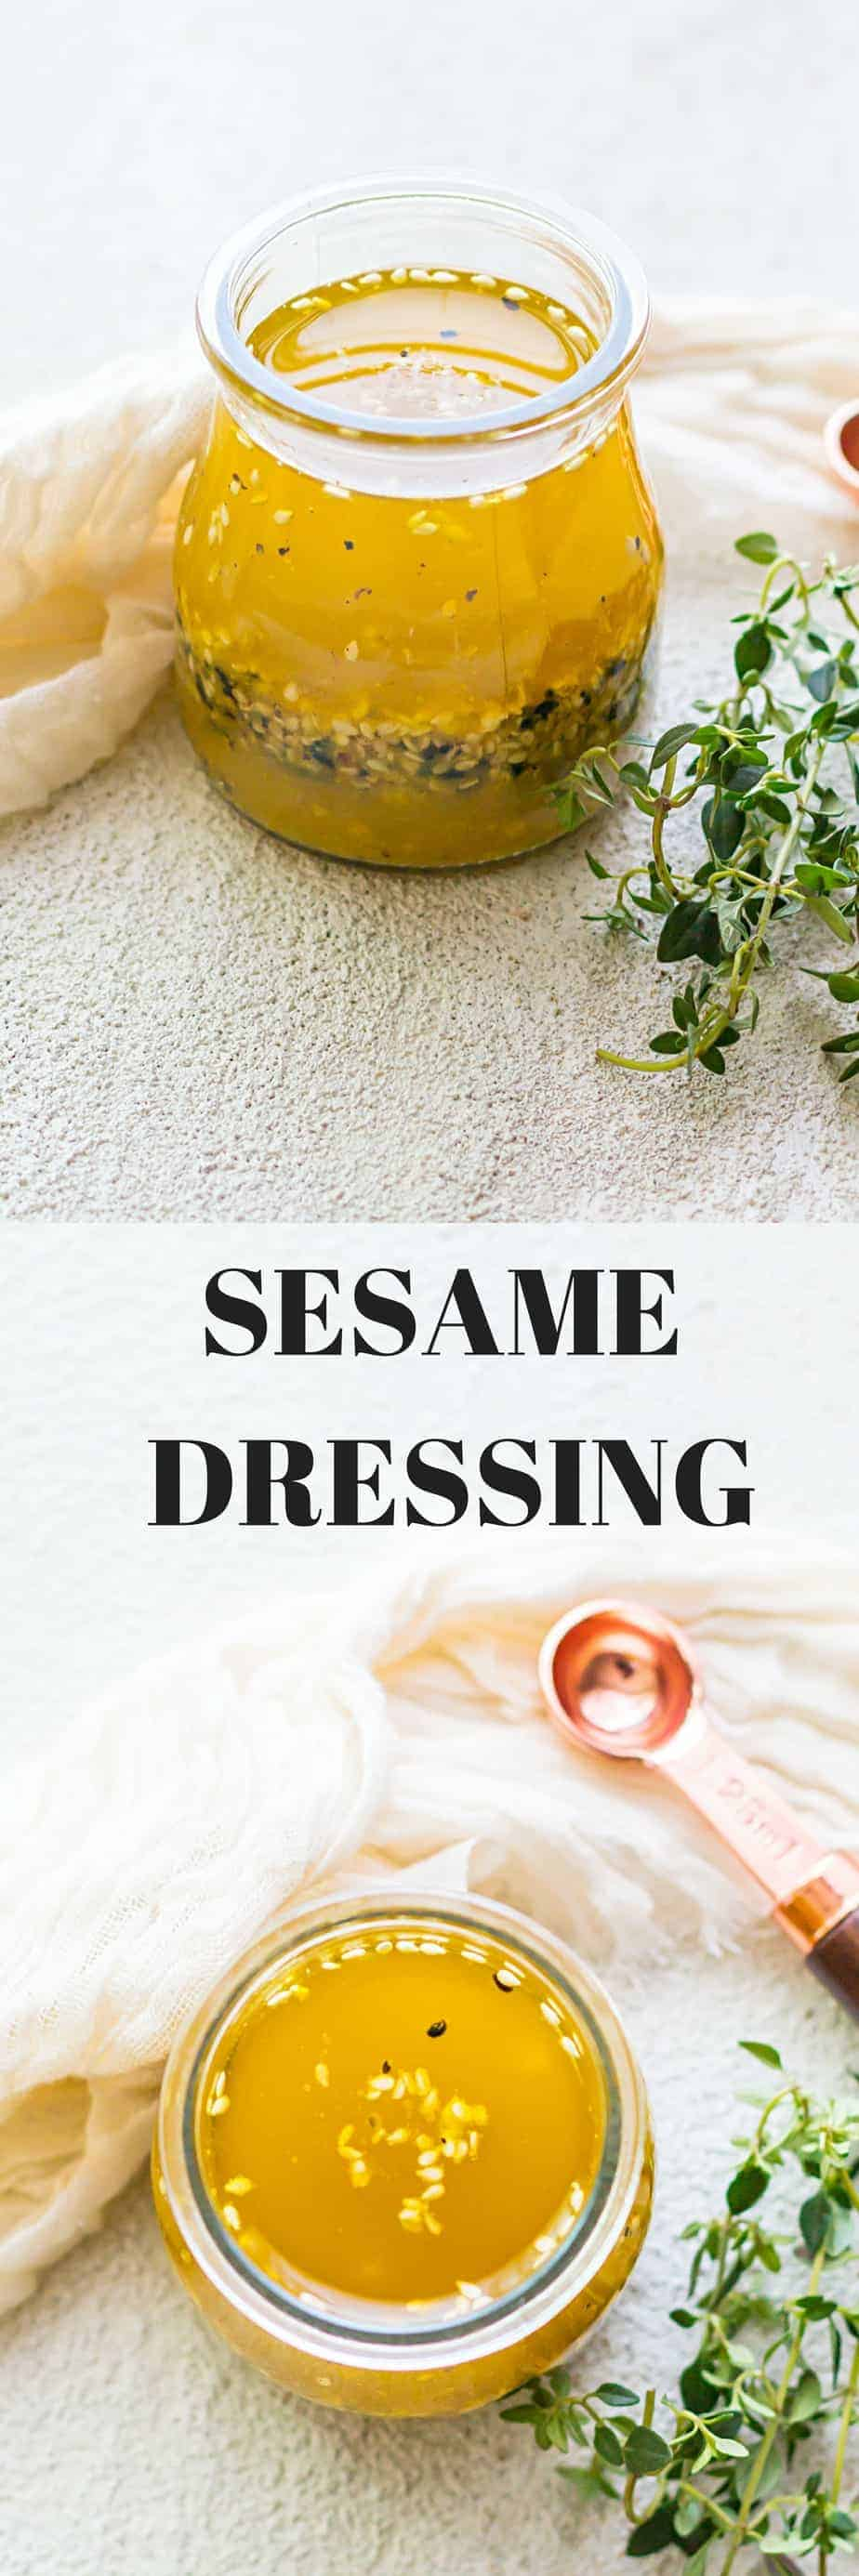 SESAME DRESSING RECIPE